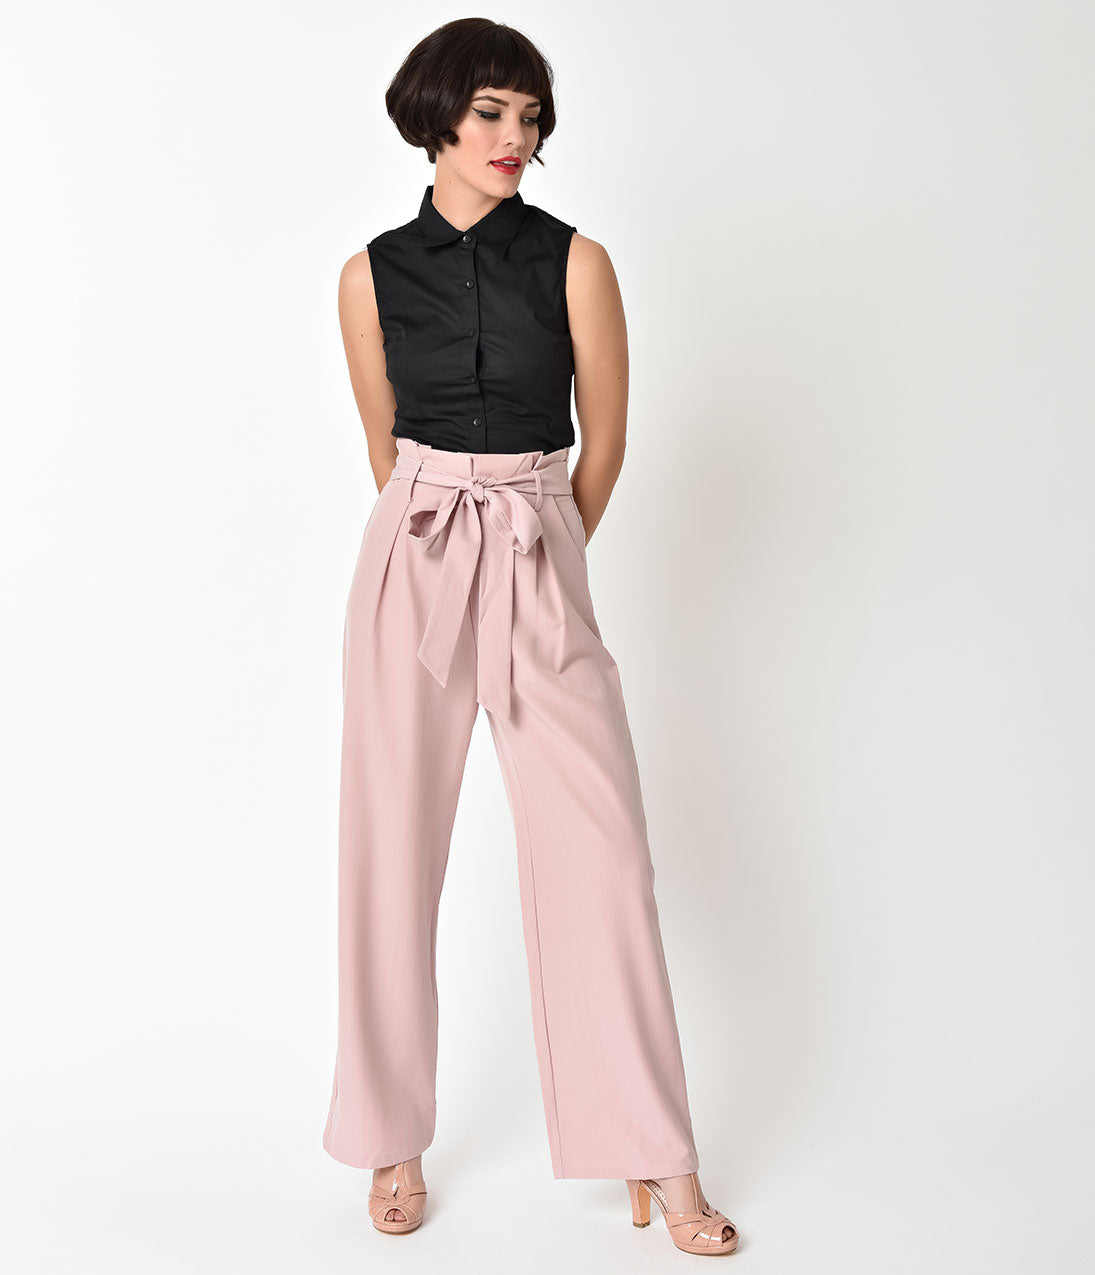 Vintage High Waisted Trousers, Sailor Pants, Jeans 1940s Blush Pink High Waist Wide Leg Trousers $48.00 AT vintagedancer.com